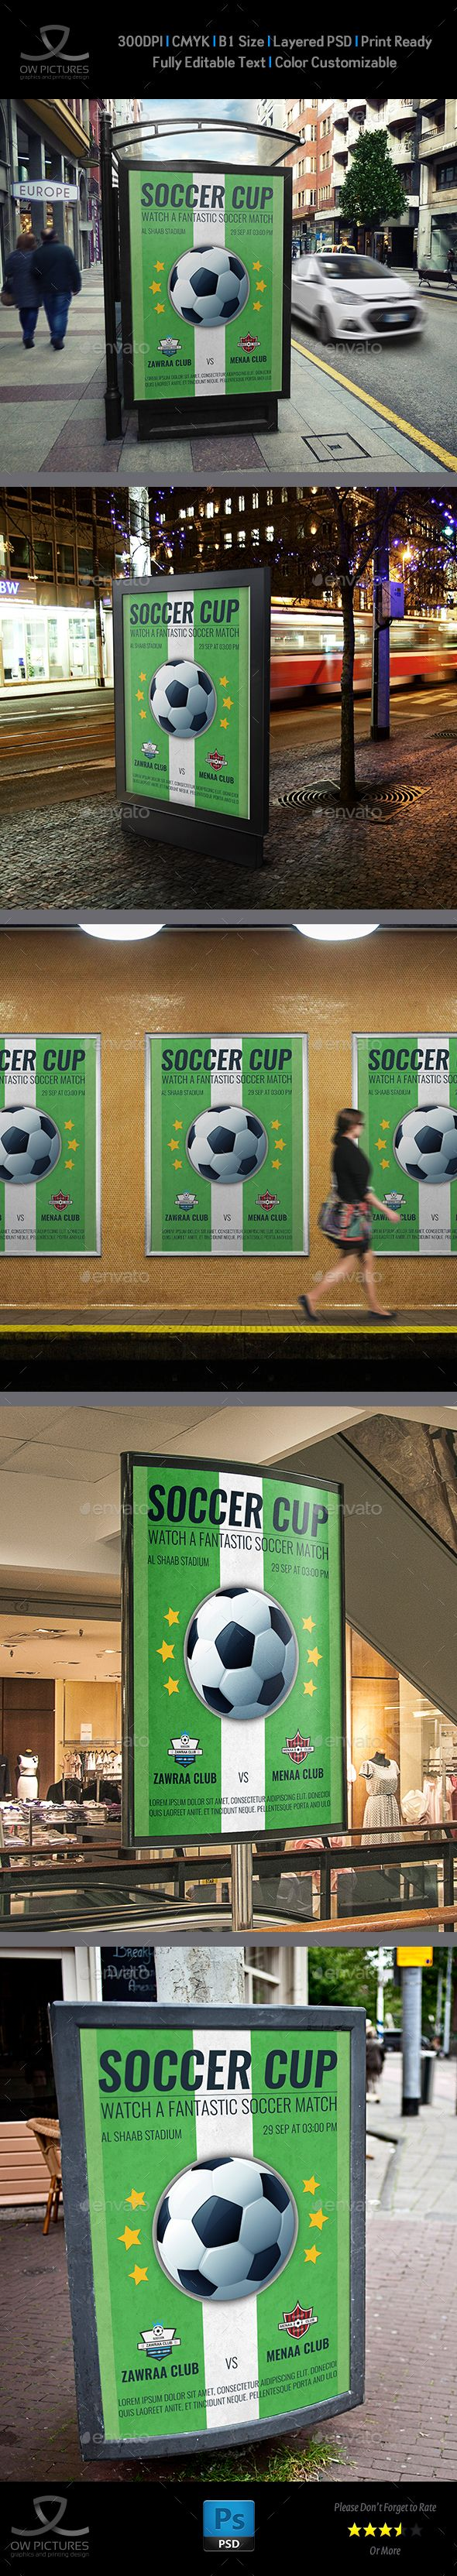 Soccer - Football Poster Template by OWPictures Poster Description: Soccerâ€...